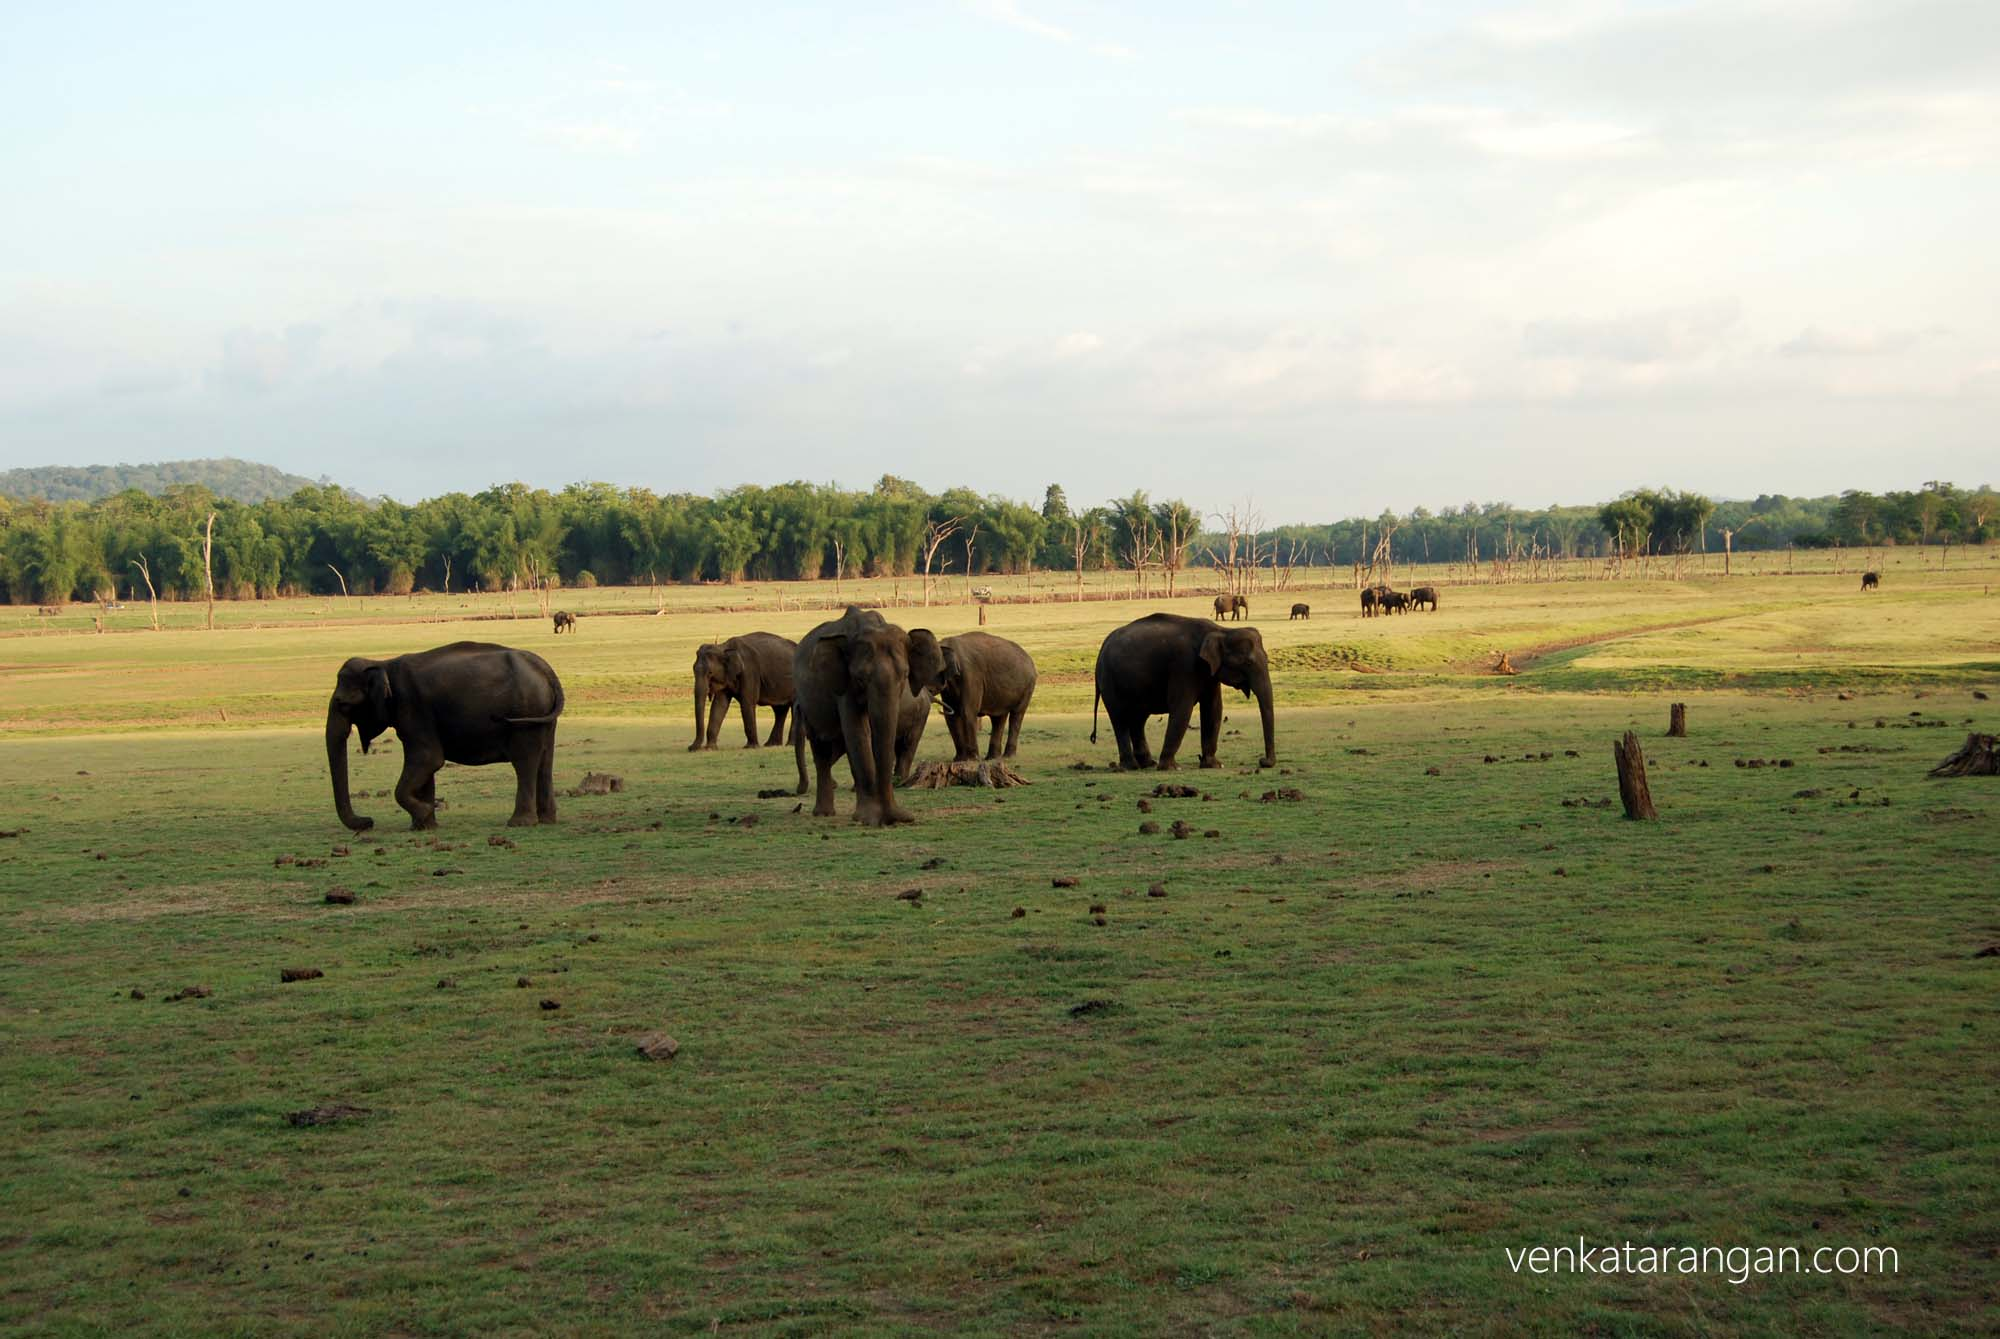 Elephants grazing